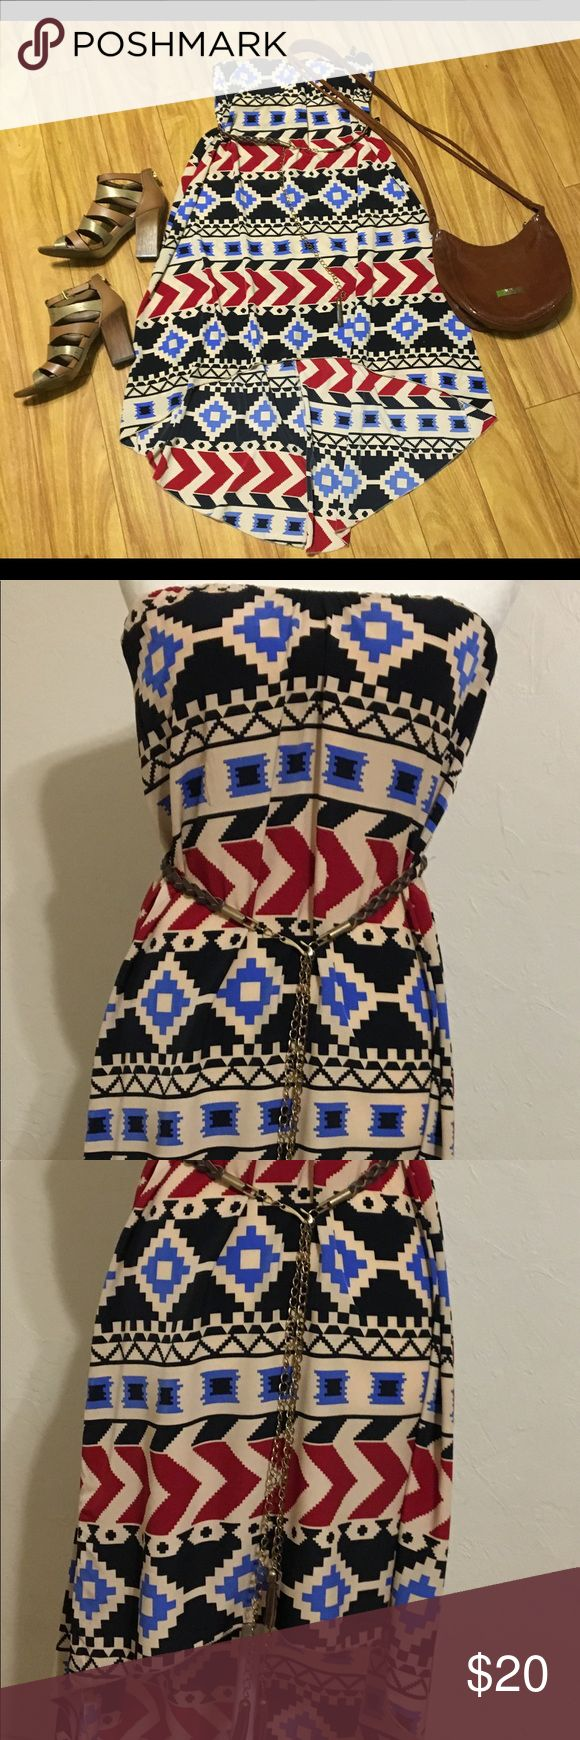 Lette Aztec Strapless Dress w Tassel Belt Size L NWOT Discover your bohemian side with this beautiful hi-low dress. Adorned with braided leather belt with chain and tassels it could be worn around town, to the music festival or on a hot summer day around town. Can be worn with or without the belt. Sleeveless dress has a built in layer on the front and bra paddings. Really nice tan color with bright prints. Lette Dresses High Low